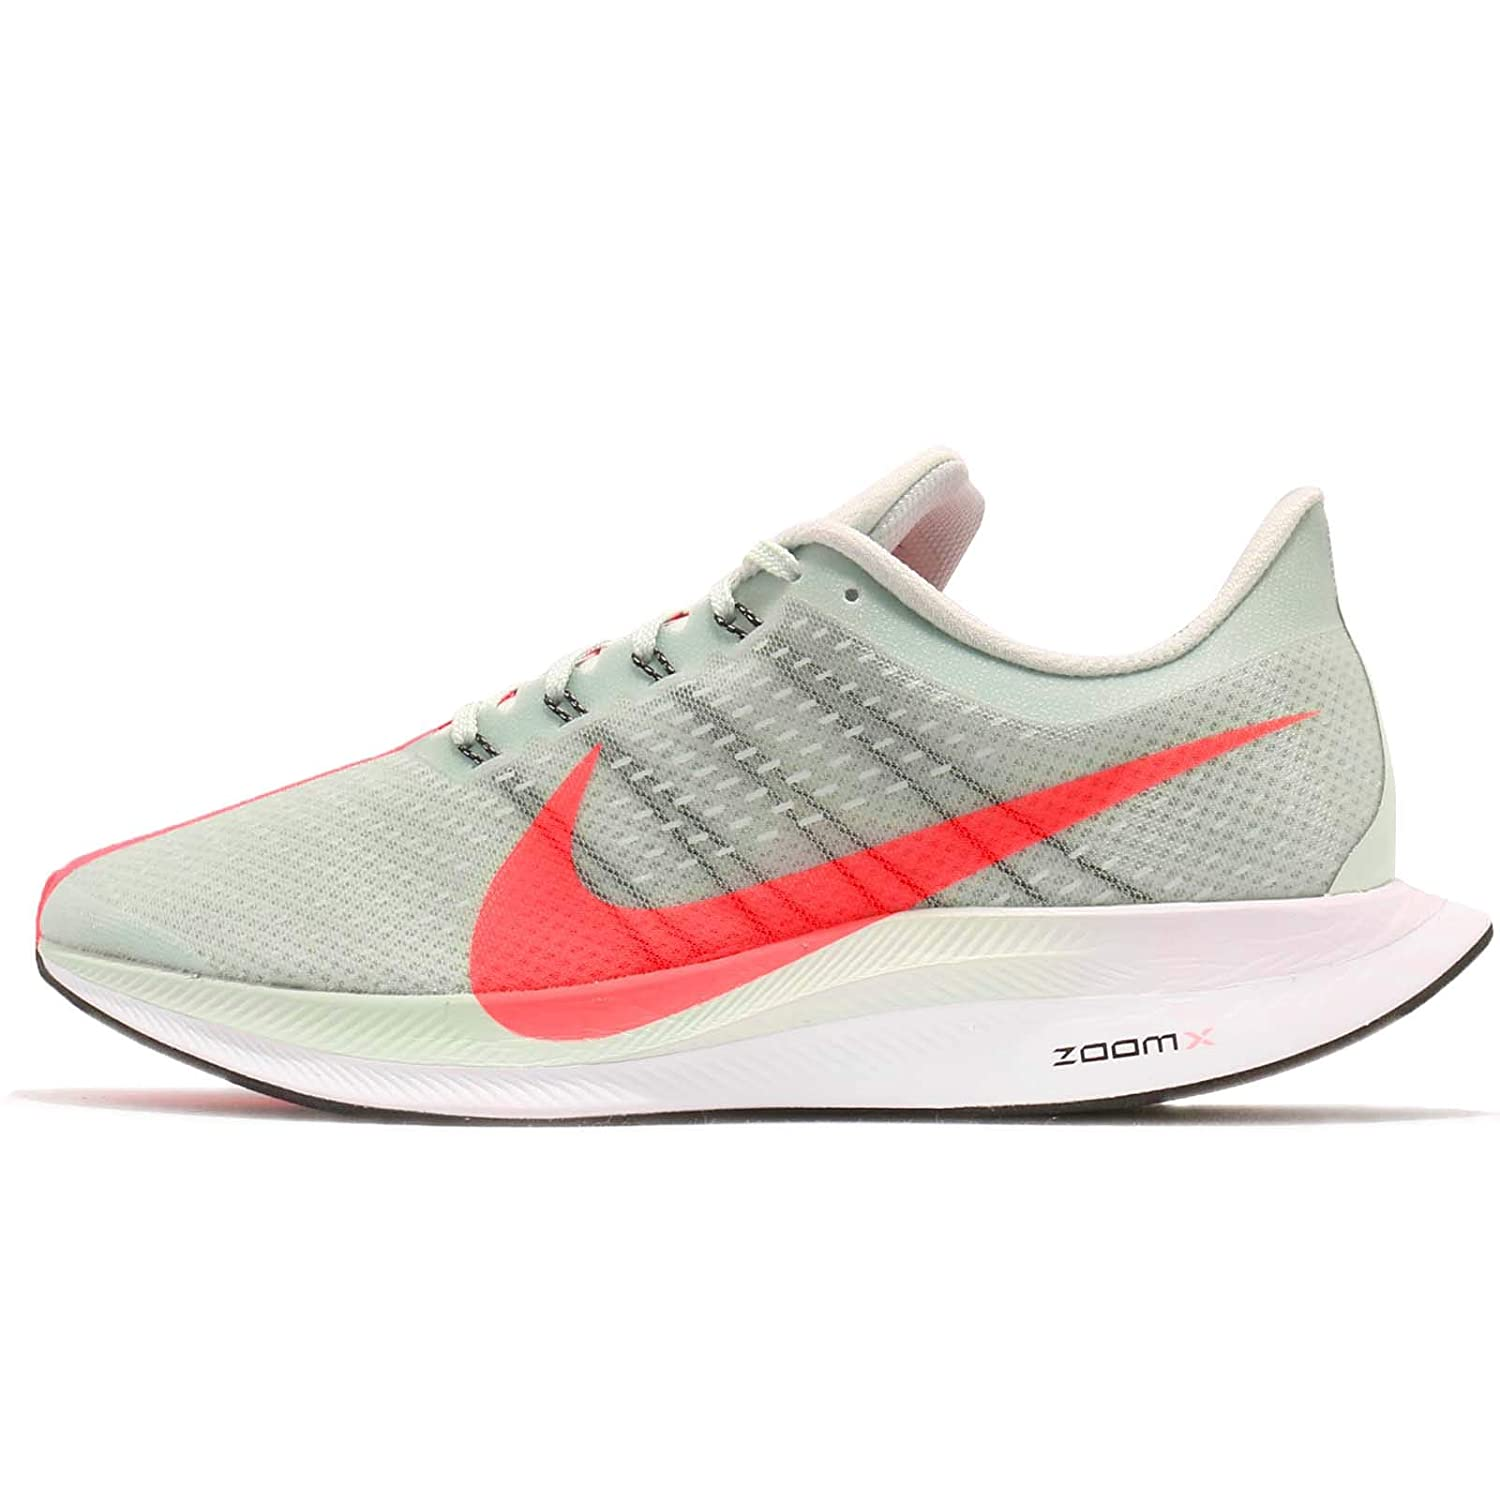 huge selection of 859da 67aa5 Amazon.com: Nike Zoom Pegasus 35 Turbo [AJ4114-060] Men ...